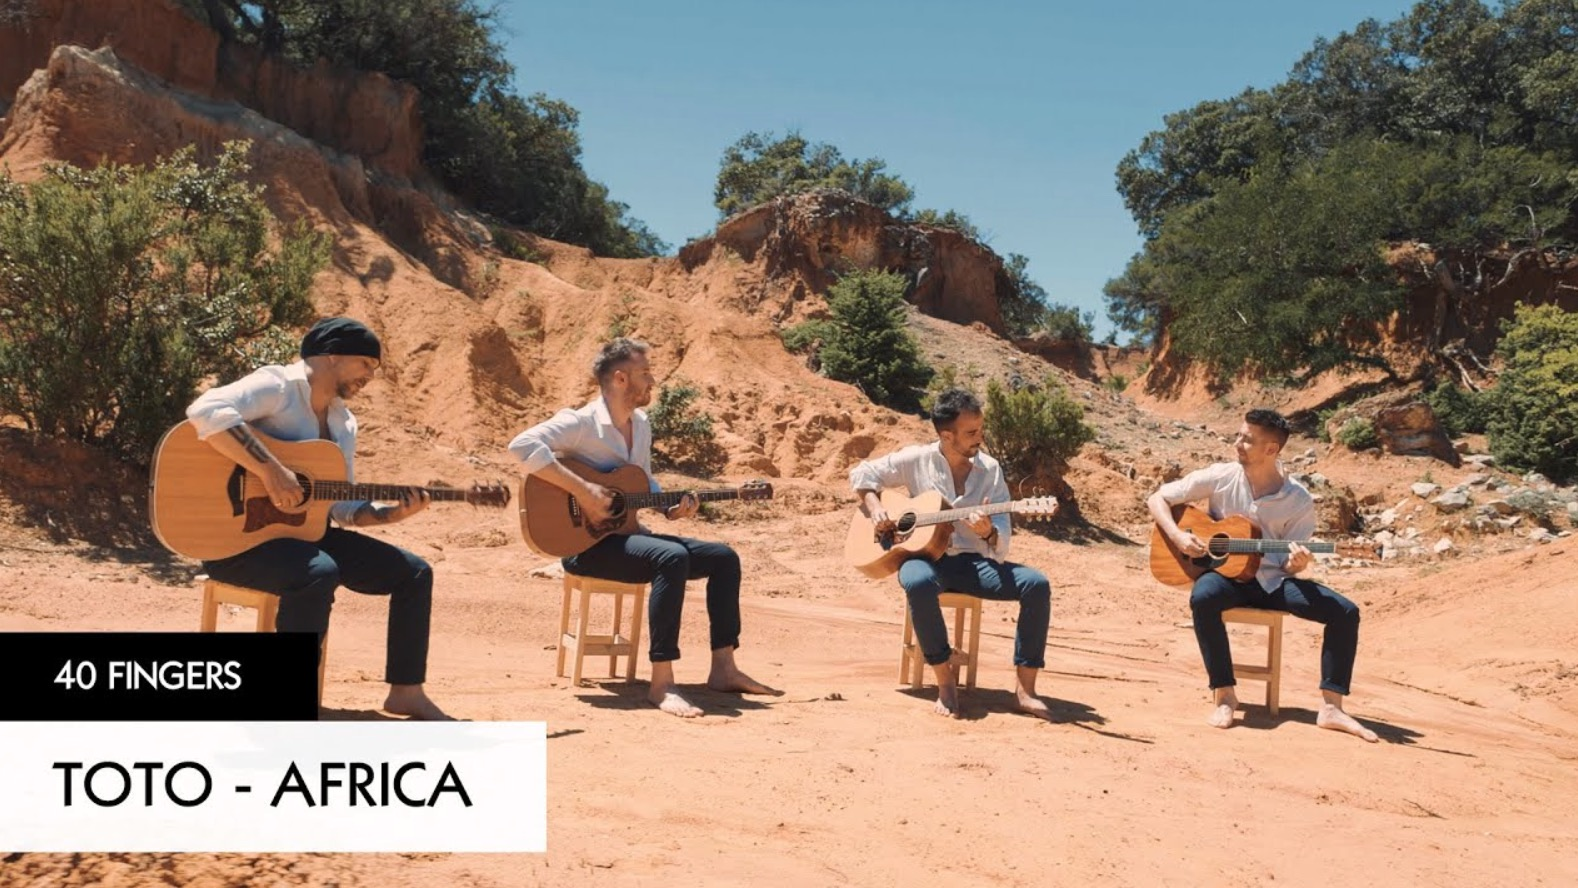 Here's A Mesmerizing Cover Of Toto's 'Africa' By A Guitar Quartet